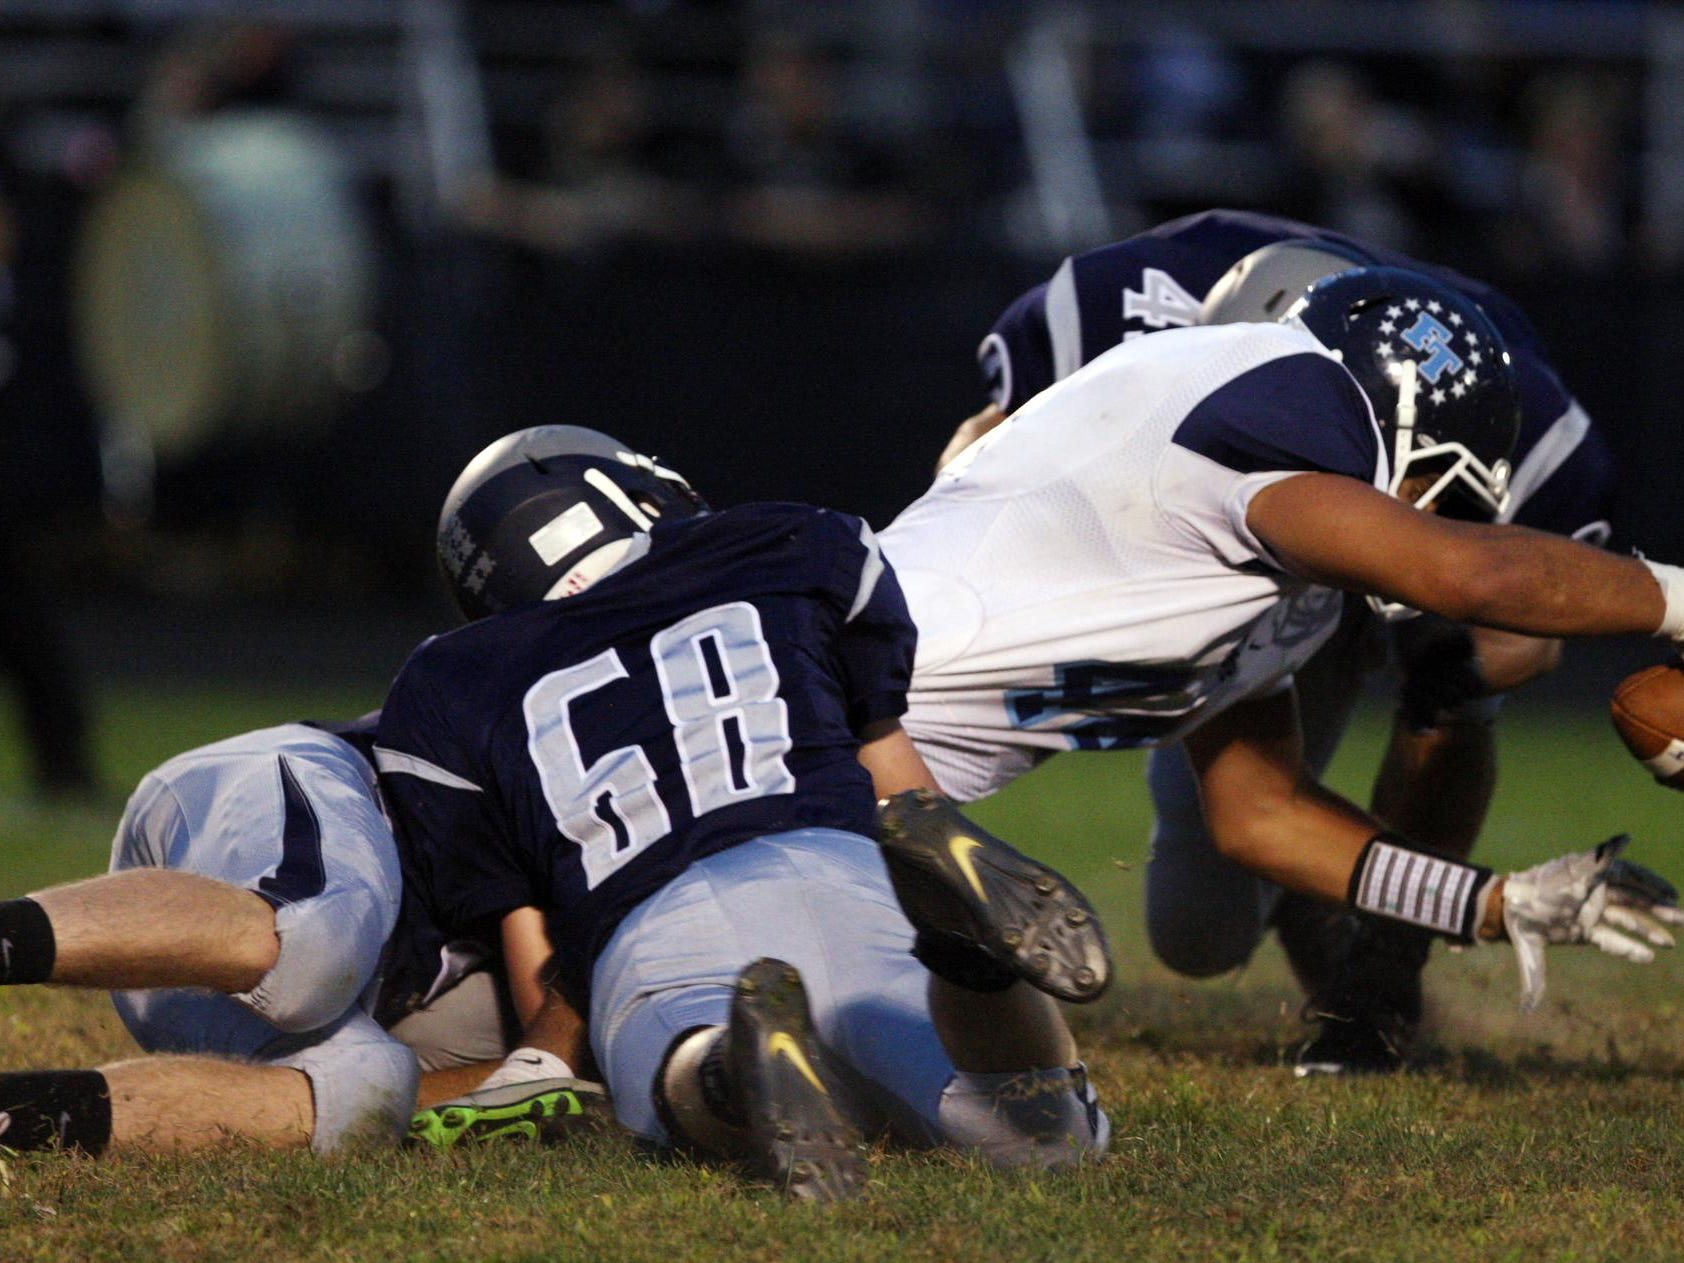 Nick Galenti, #44 Freehold Township, reaches for an extra yard as he is tackled by Eddie Roszkowski, #68 Howell, in a football game Friday, September 25, 2015, at Howell High School.